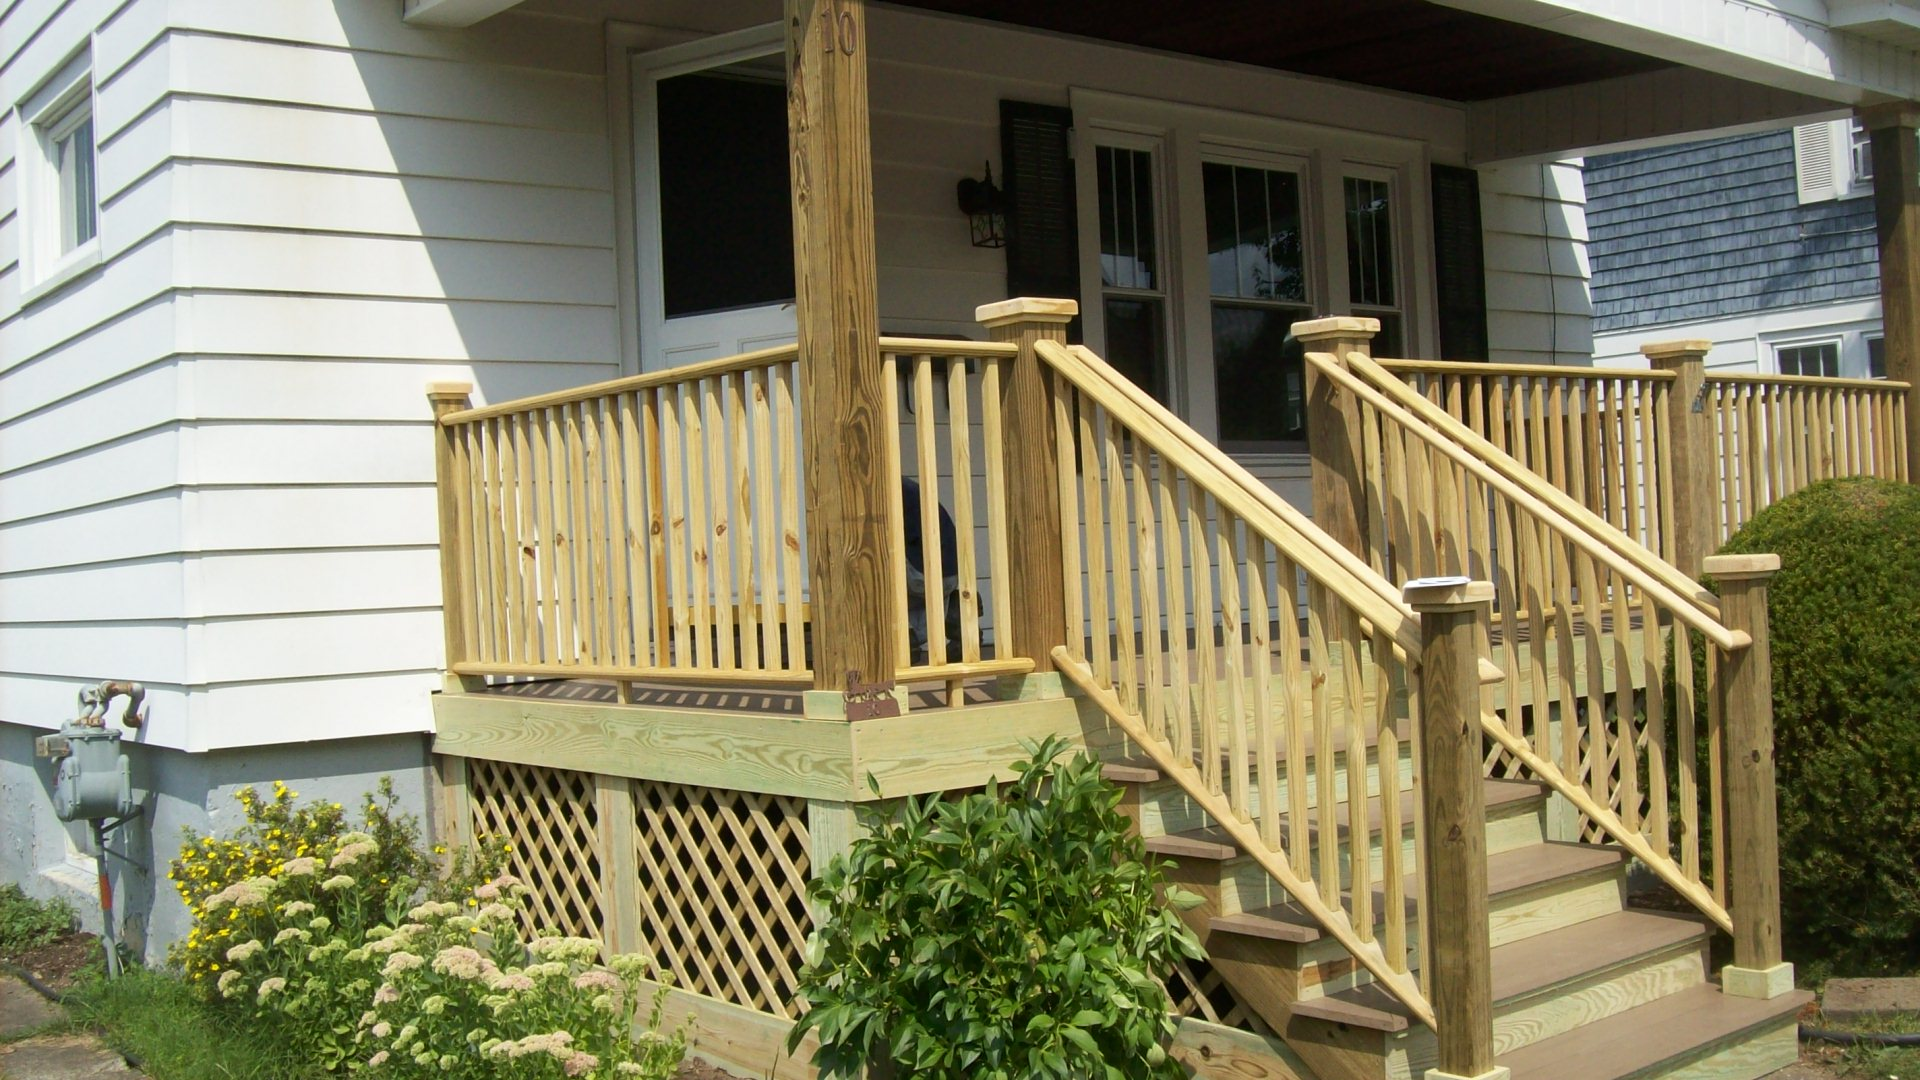 Outdoor Living | Patriot Construction of Upstate New York ... on Patriot Outdoor Living id=36964